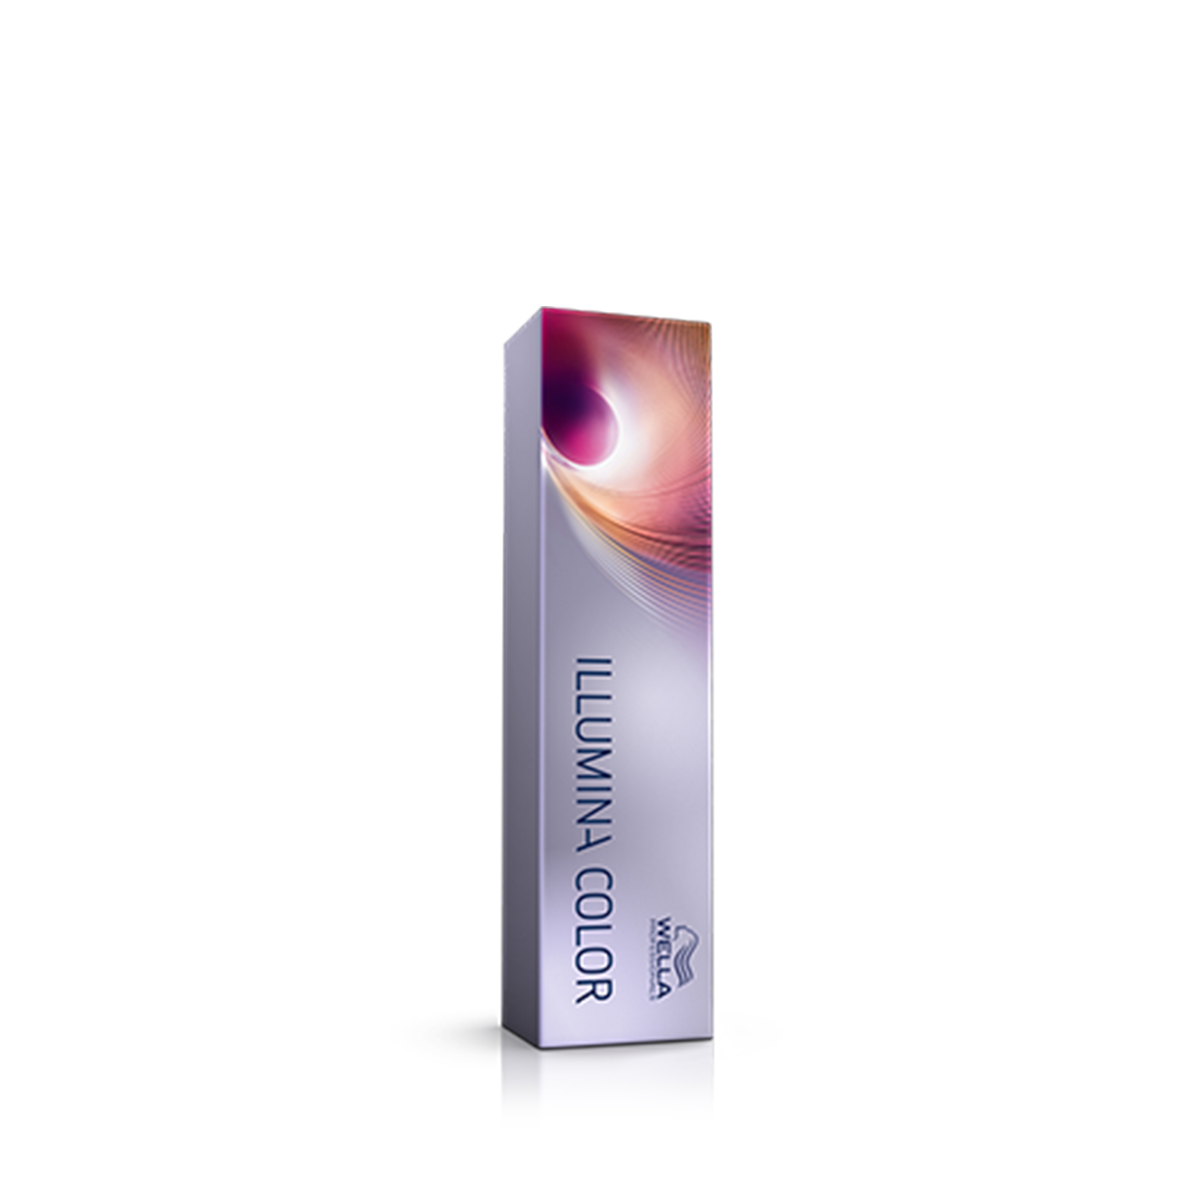 Illumina Color 60 Ml Biondo Chiarissimo Nat. Dorato